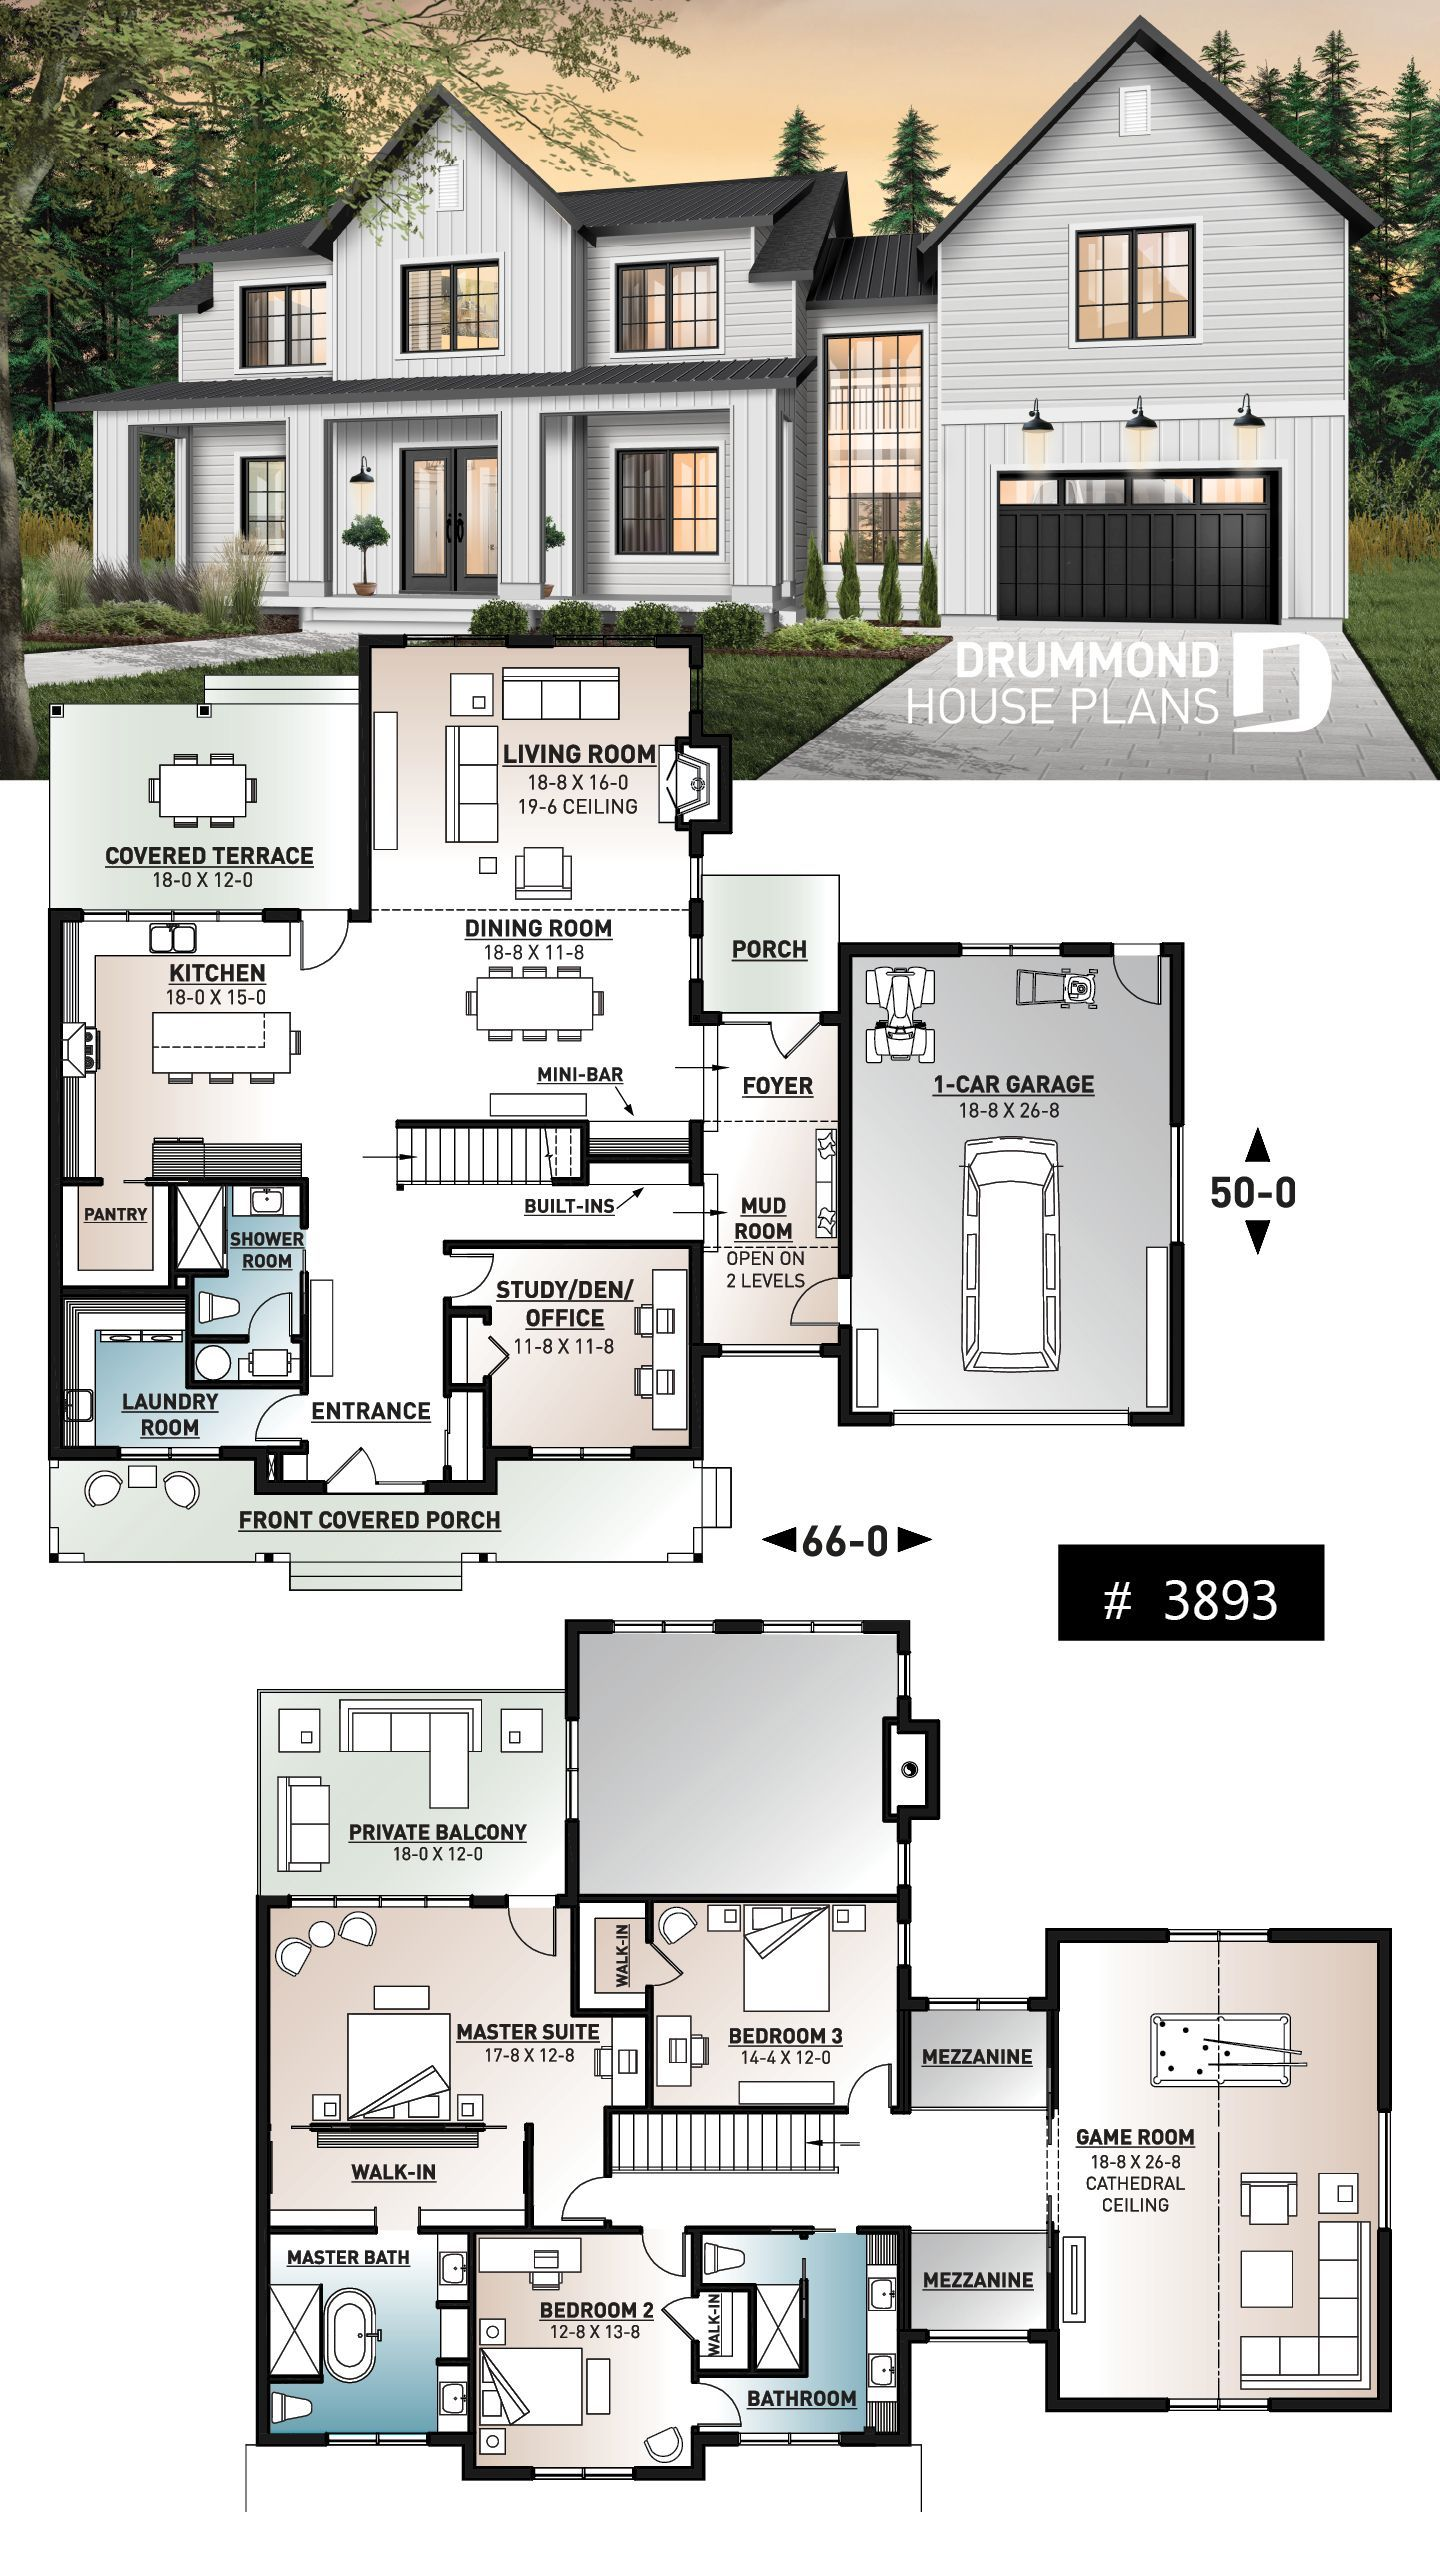 Photo of 4 bedroom modern farmhouse plan, 3 baths, garage, spectacular living room with f…